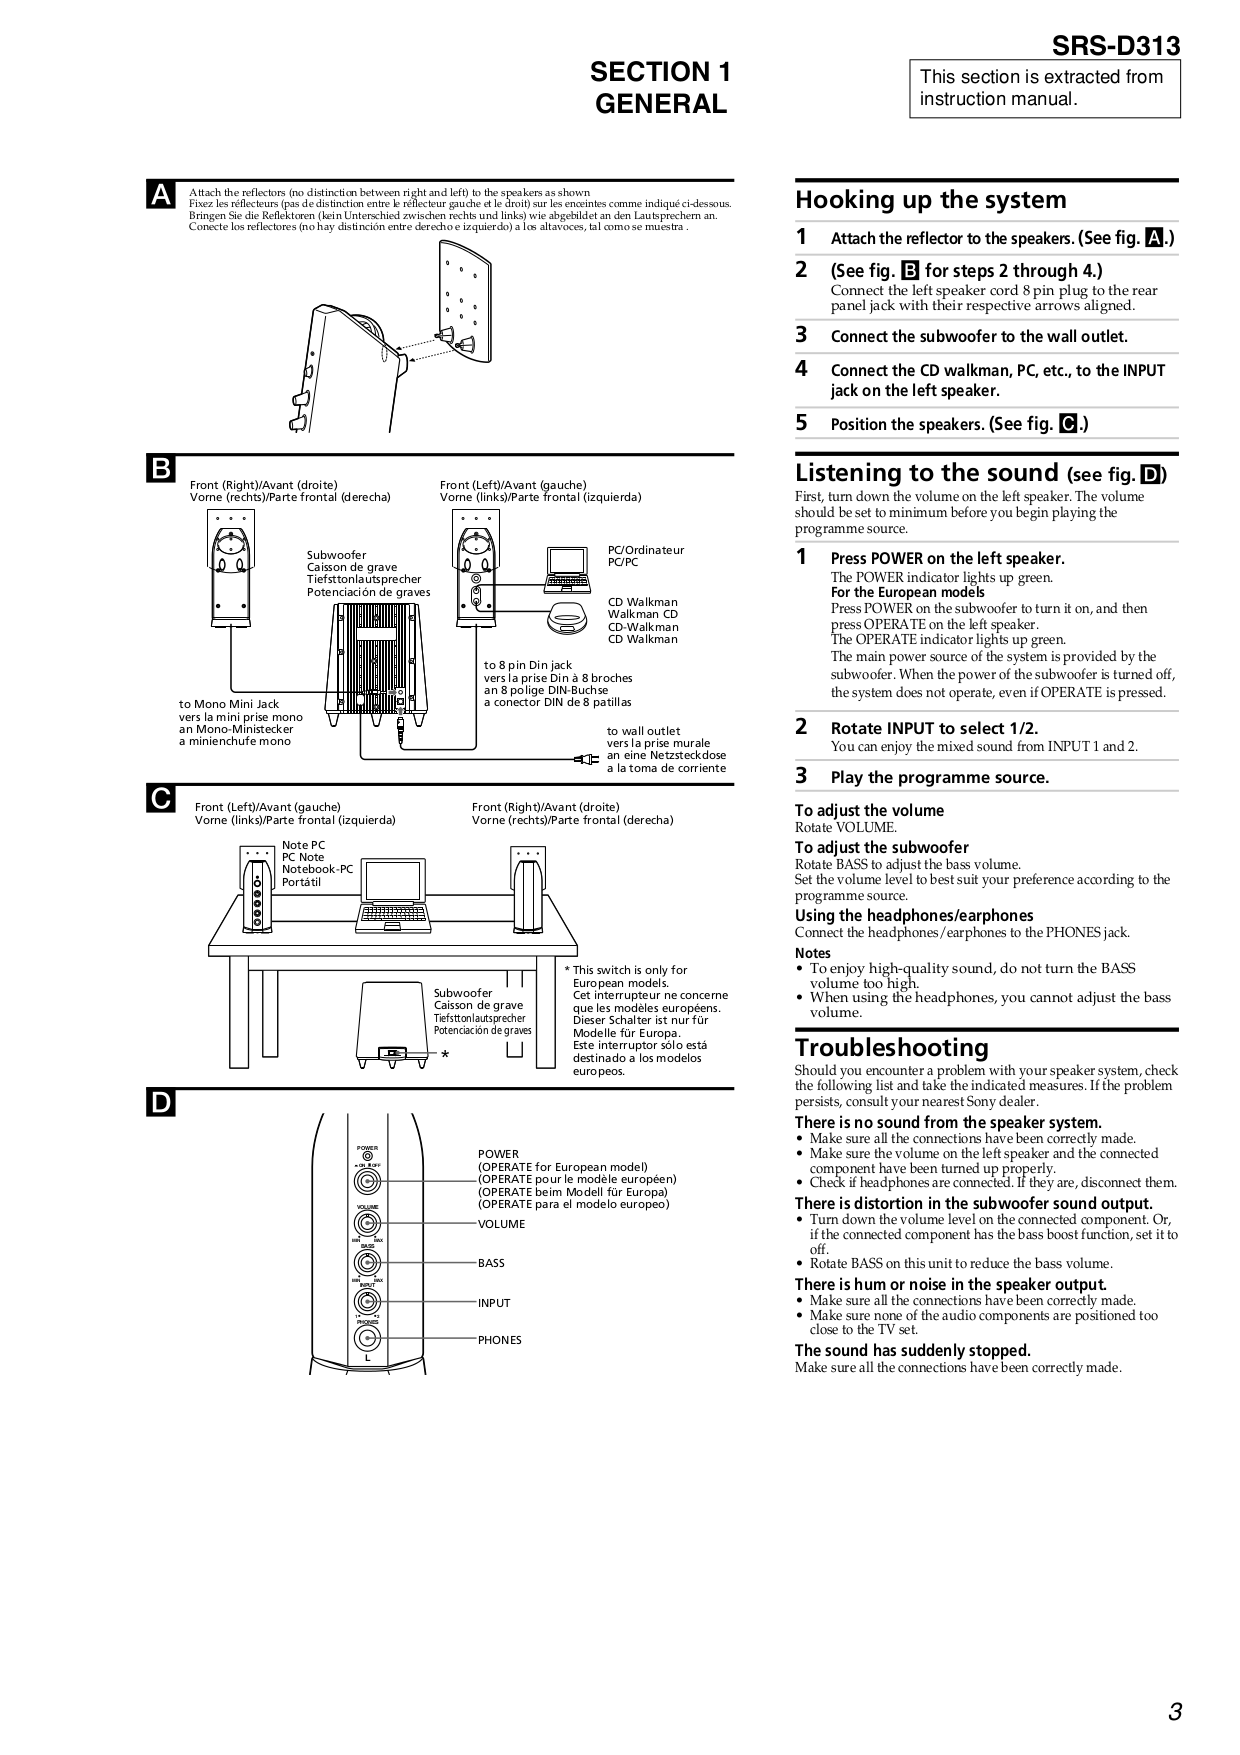 Pdf Manual For Sony Speaker Srs D313 Cheap Emergency Lights Using Page Preview